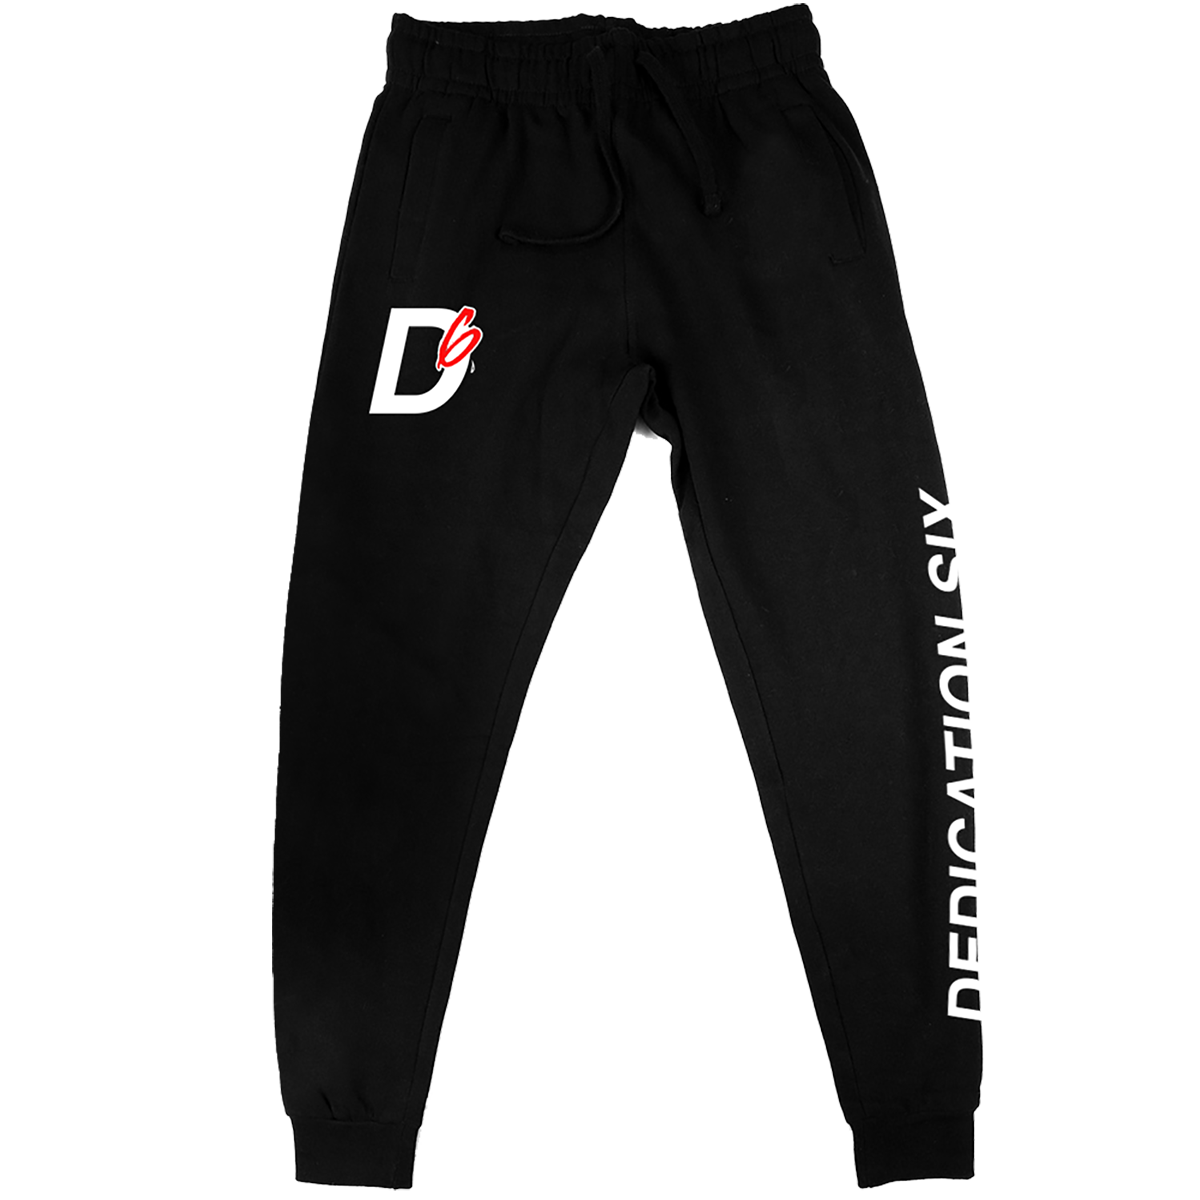 D6 Sweatpants